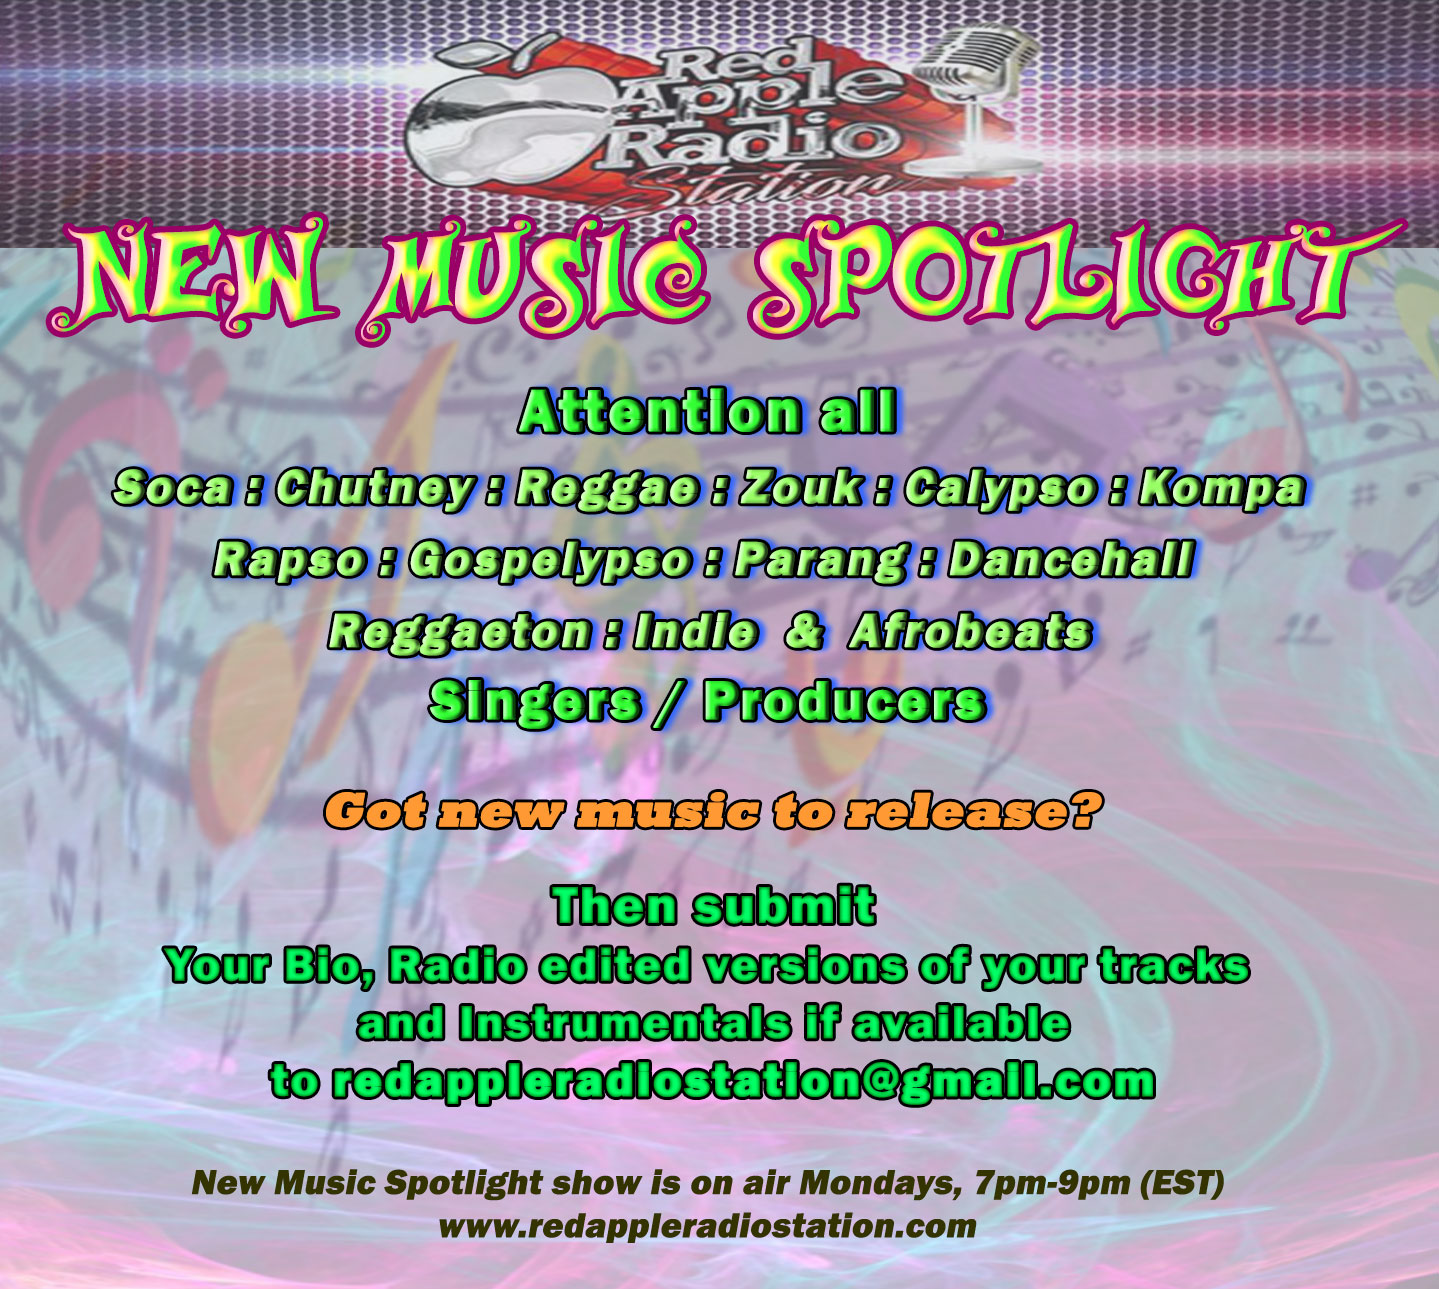 Red Apple Radio Station: New Music Spotlight - Submit your music